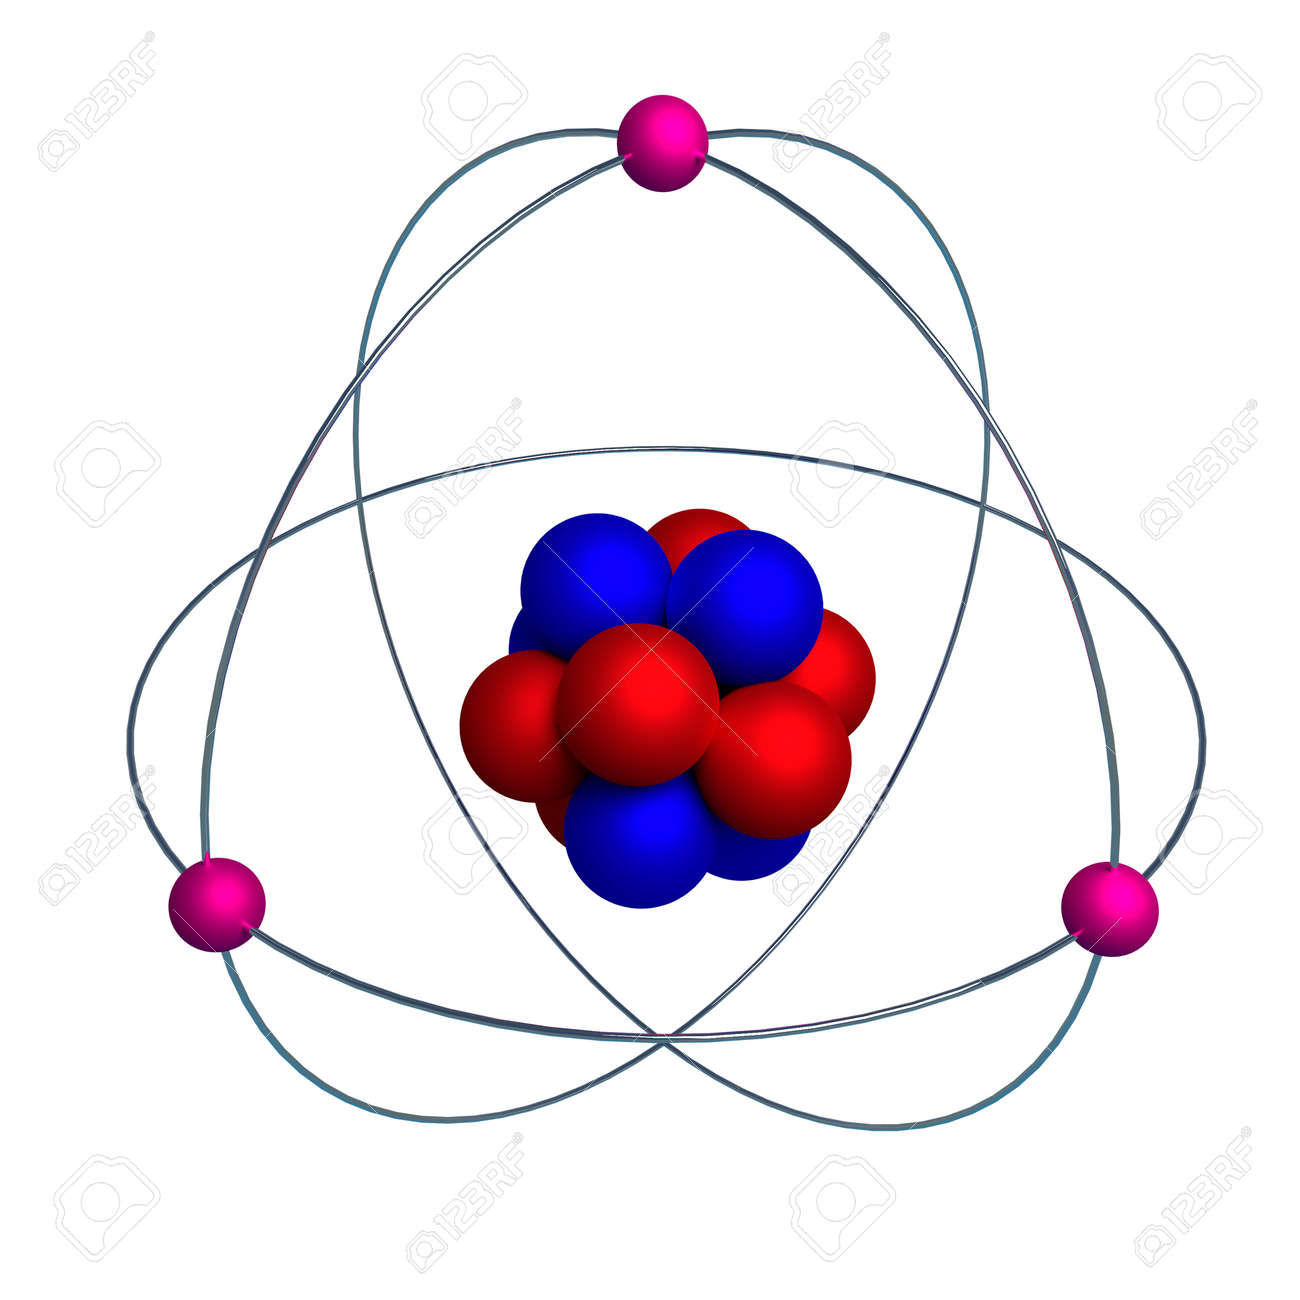 3d model of the nucleus of an atom with protons and neutrons stock